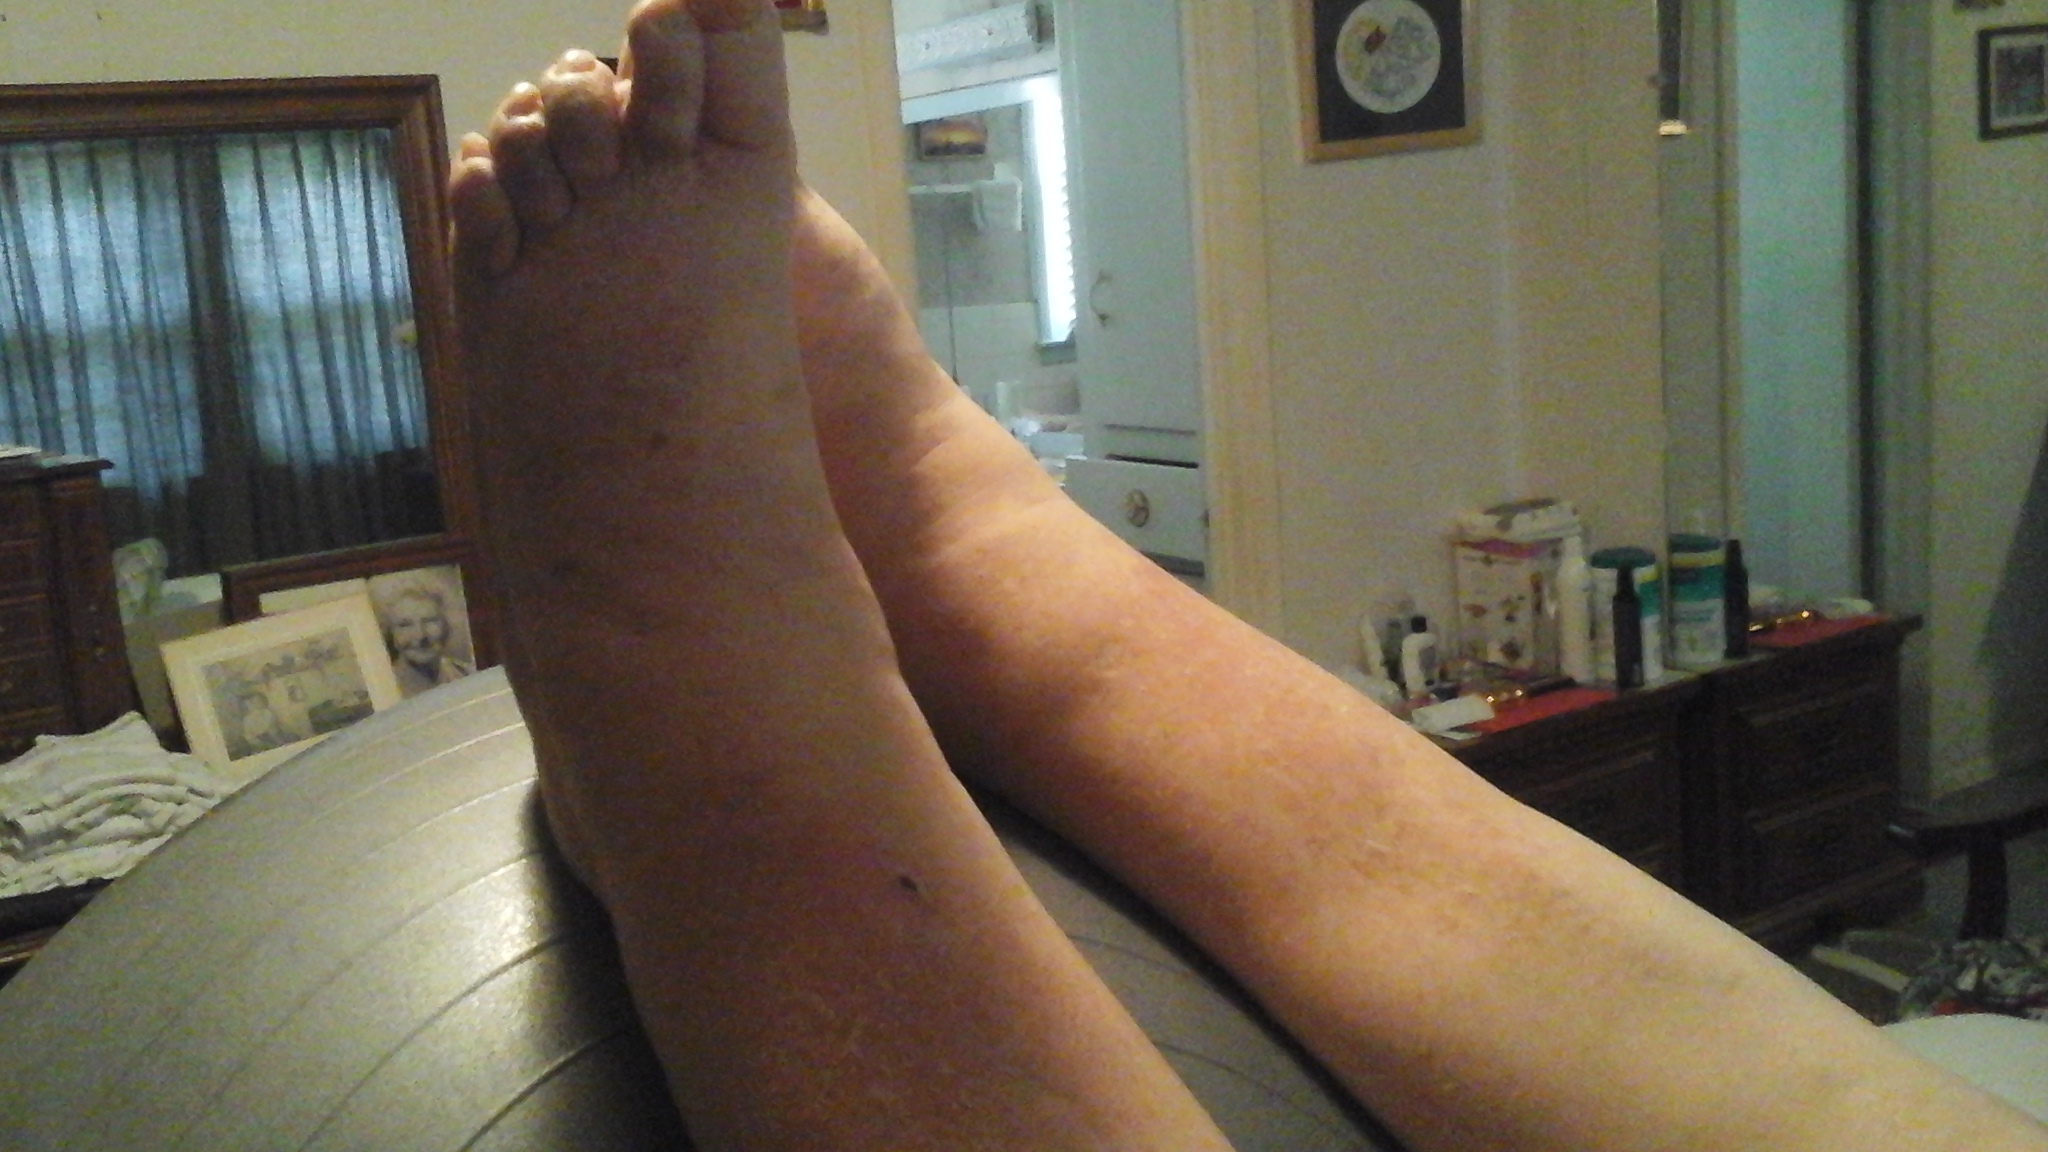 Lower leg swelling